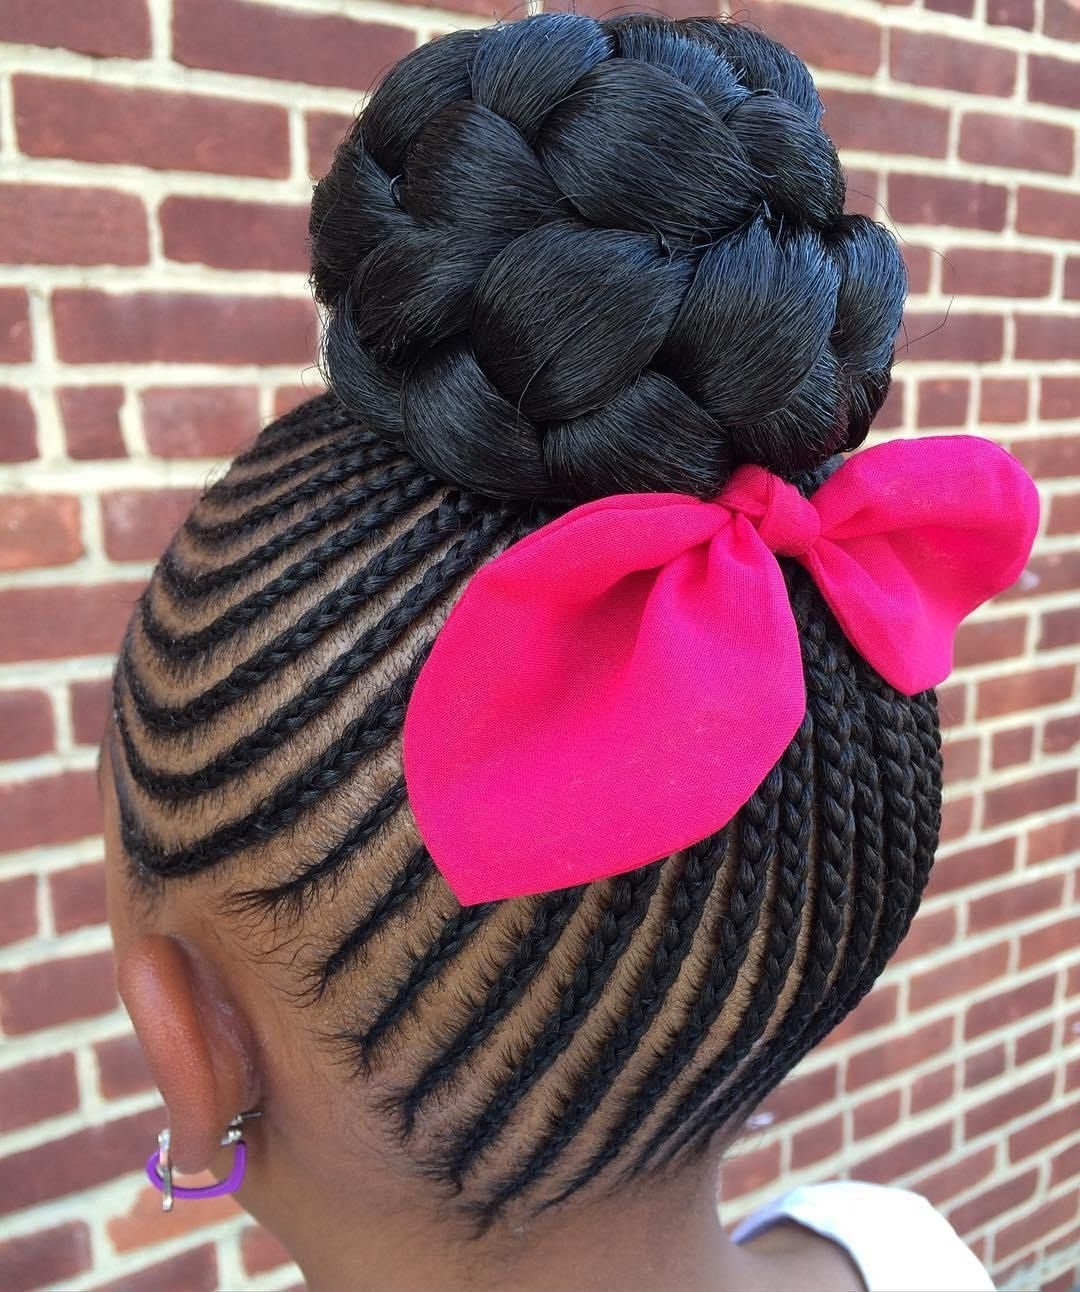 Black Girls Hairstyles And Haircuts – 40 Cool Ideas For Black Coils Throughout Cornrow Updo Bun Hairstyles (View 3 of 15)